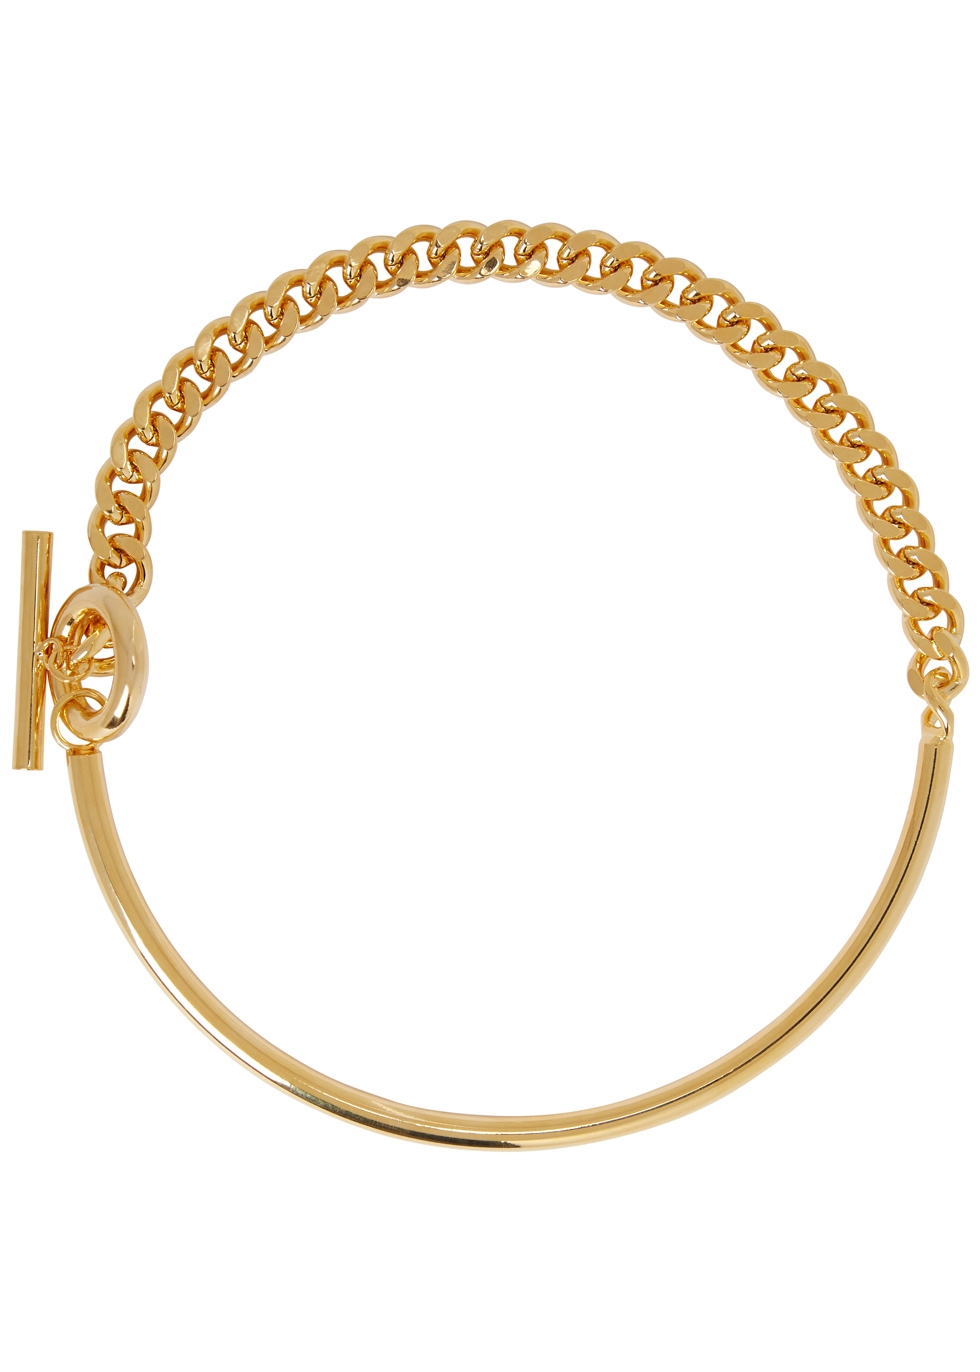 FALLON CURB GOLD CHAIN COLLAR